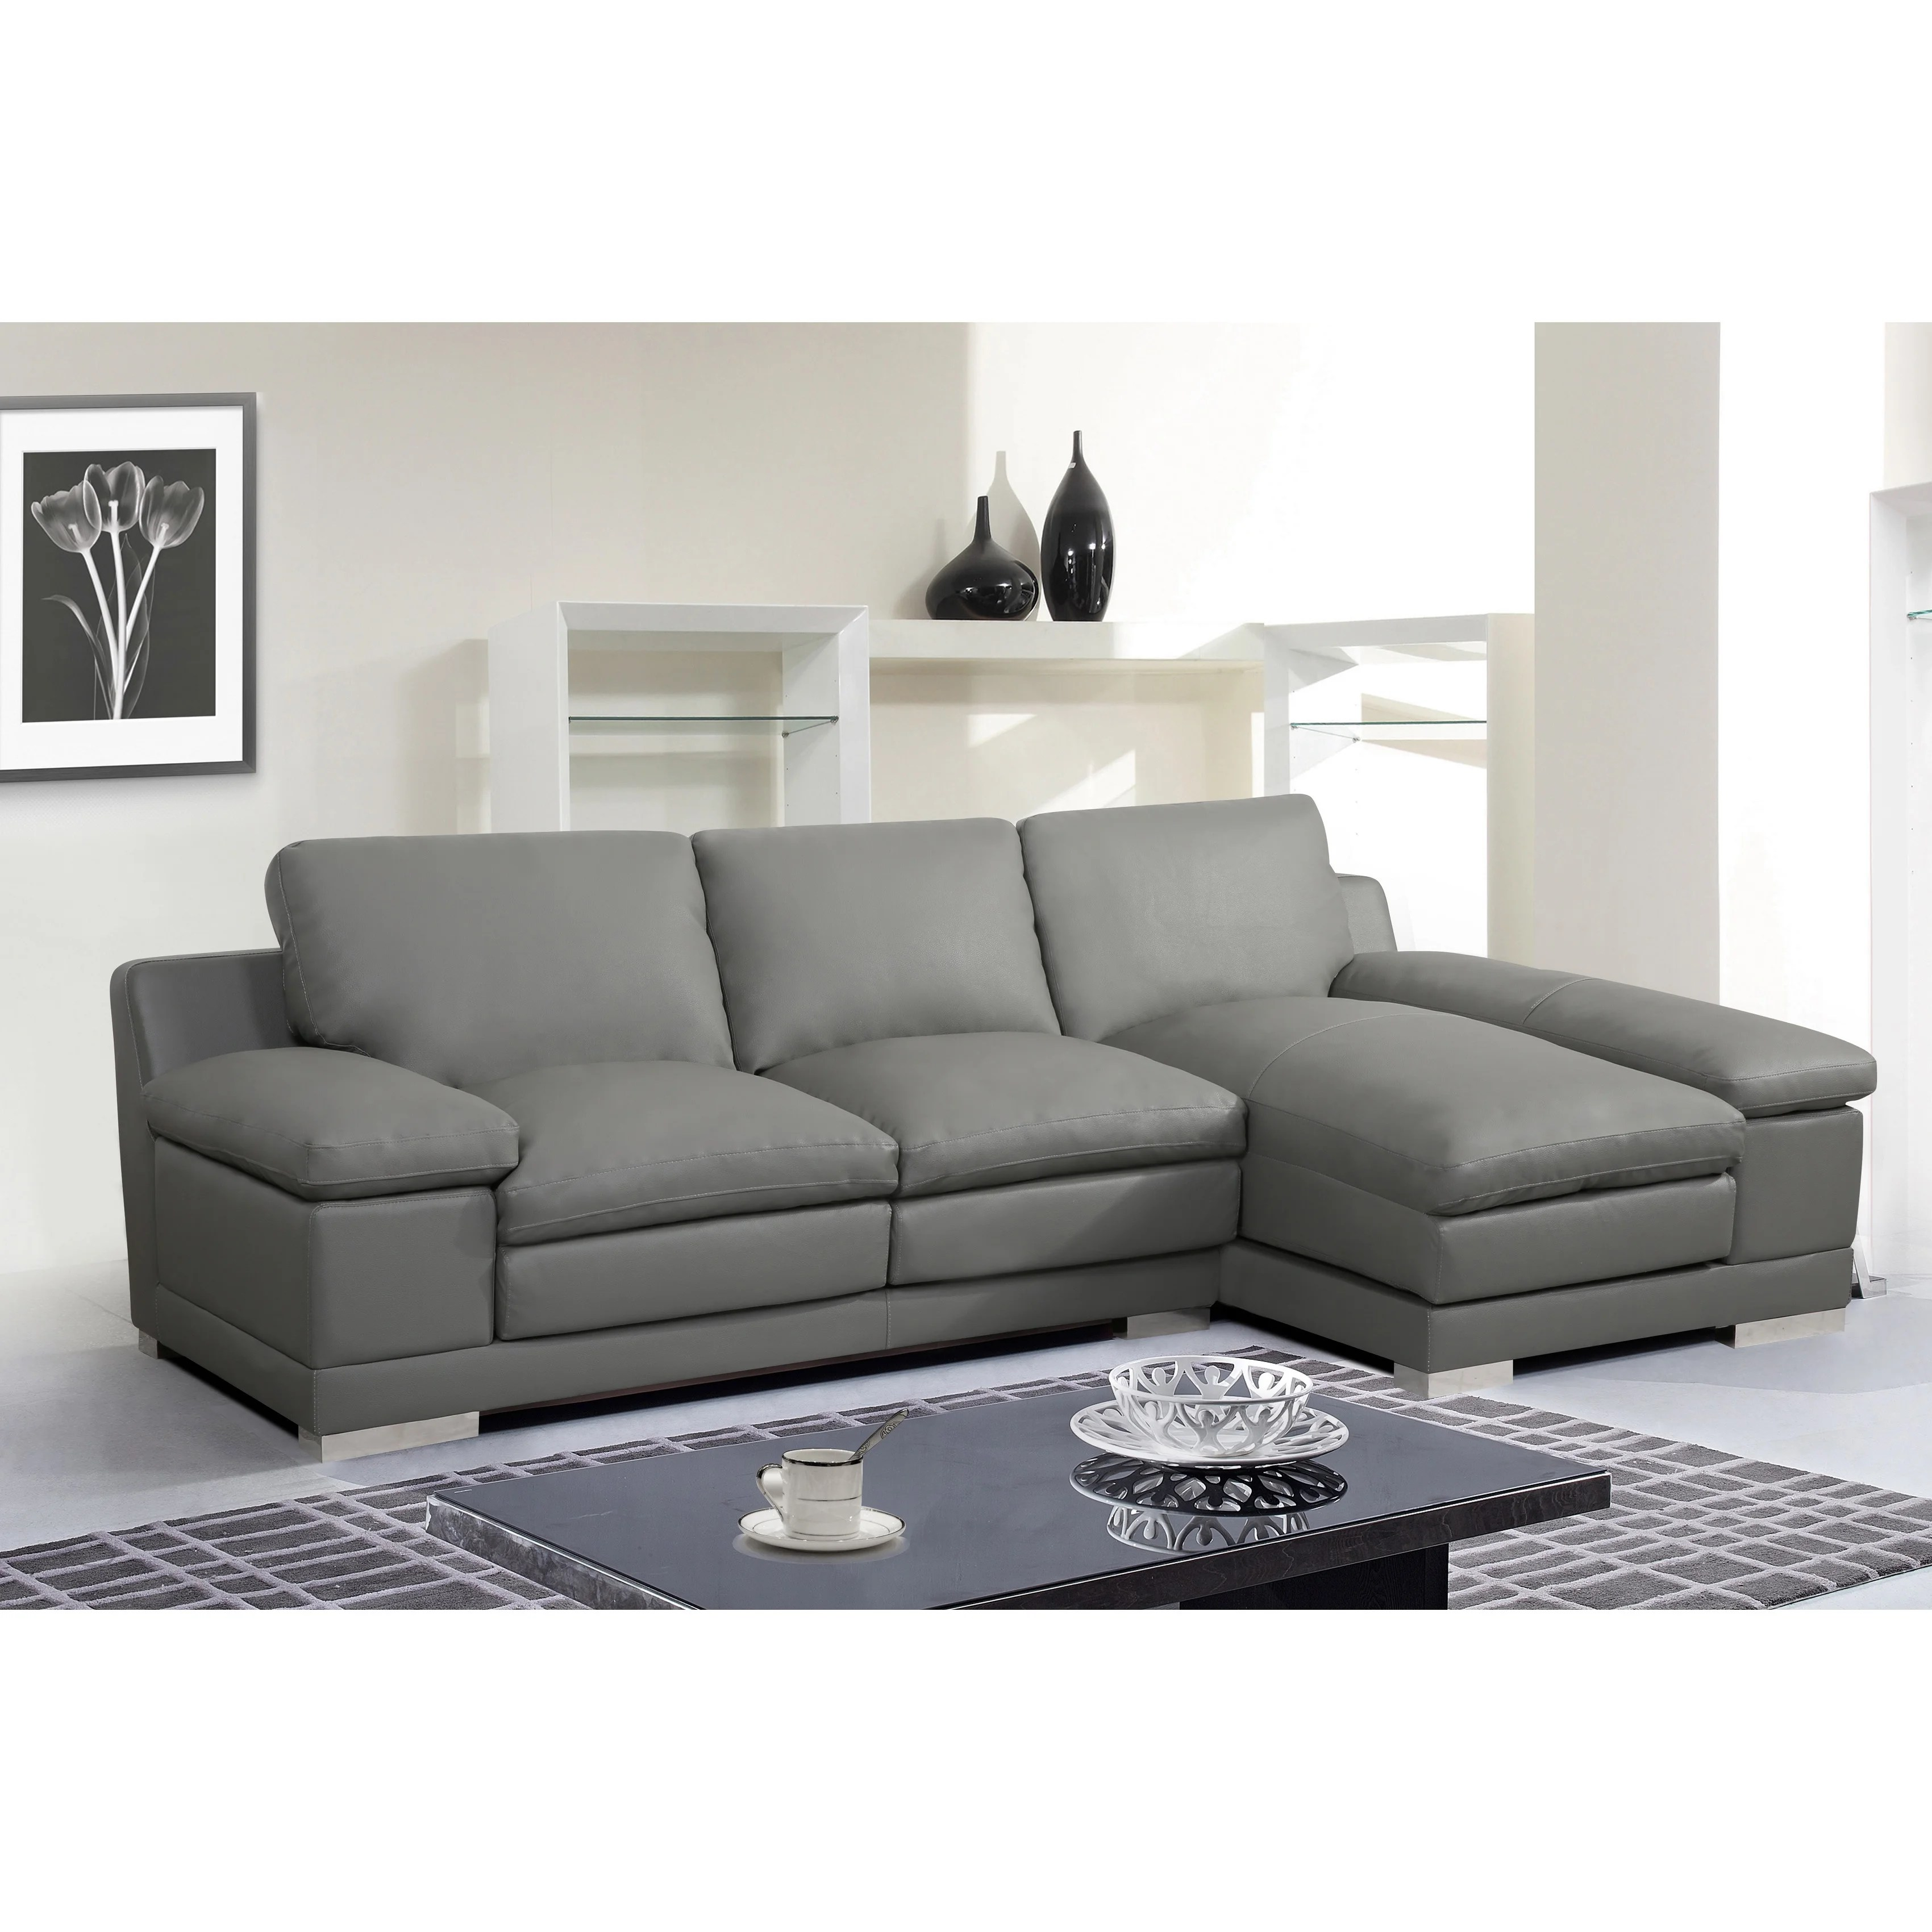 adrian contemporary bonded leather sectional sofa set